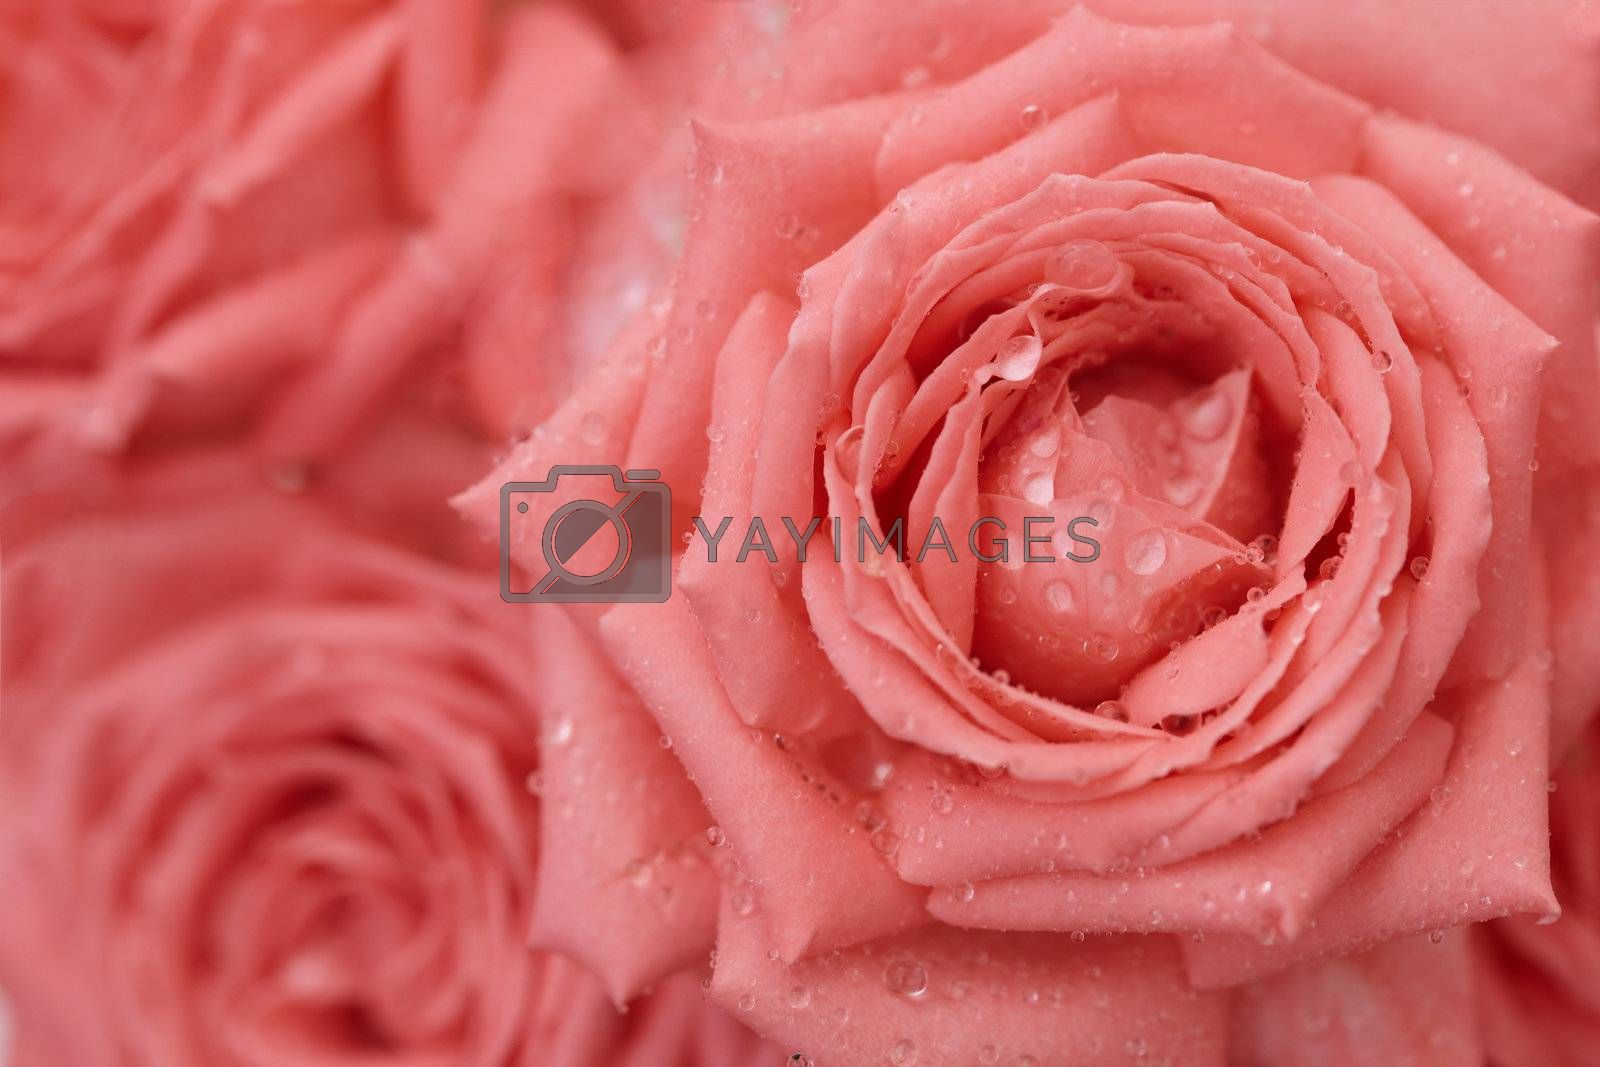 Royalty free image of Roses with drops on petals - background by pzaxe